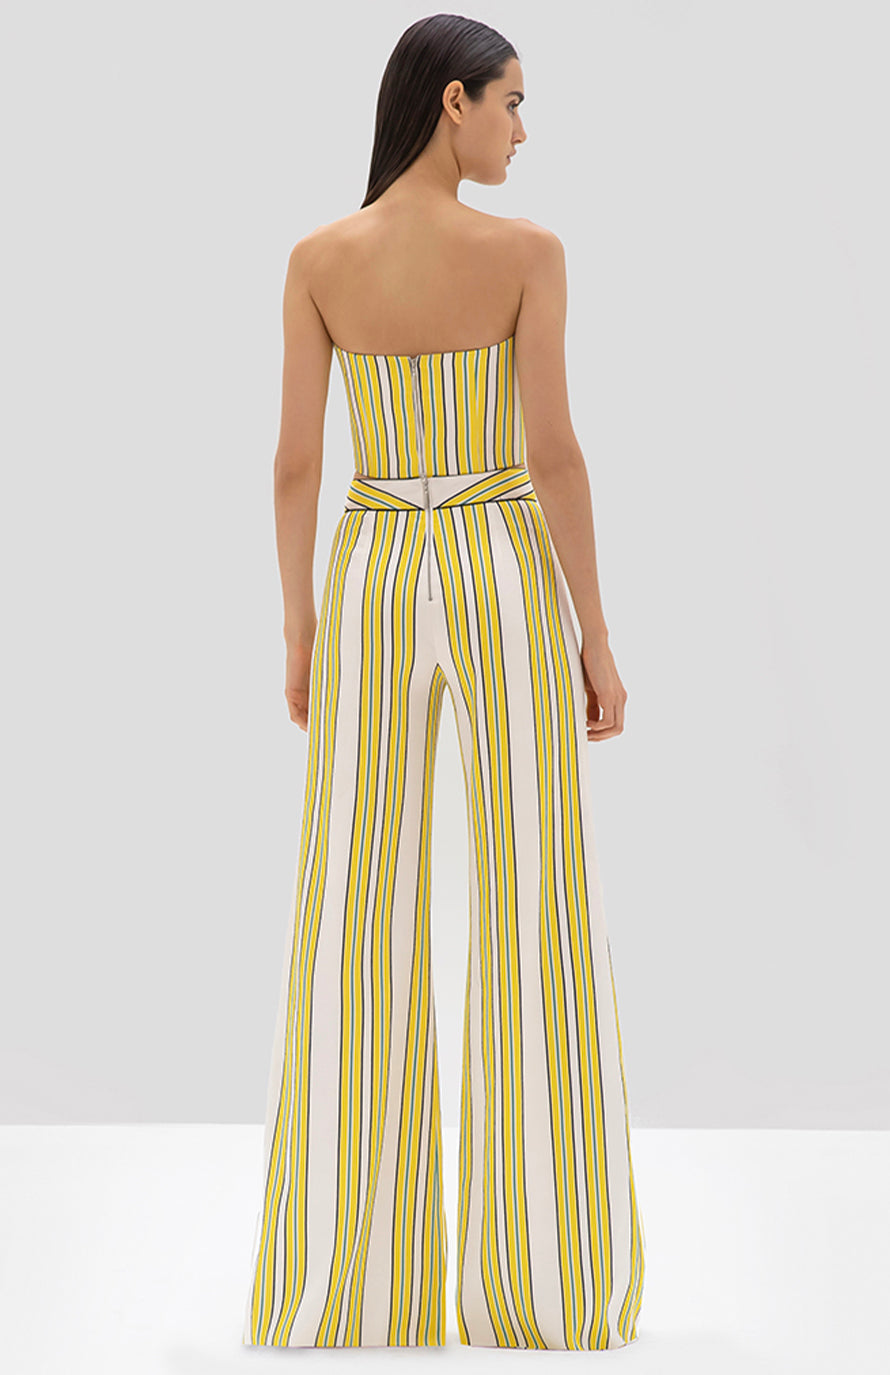 Alexis Summer Bustino tuscan stripe - Rear View